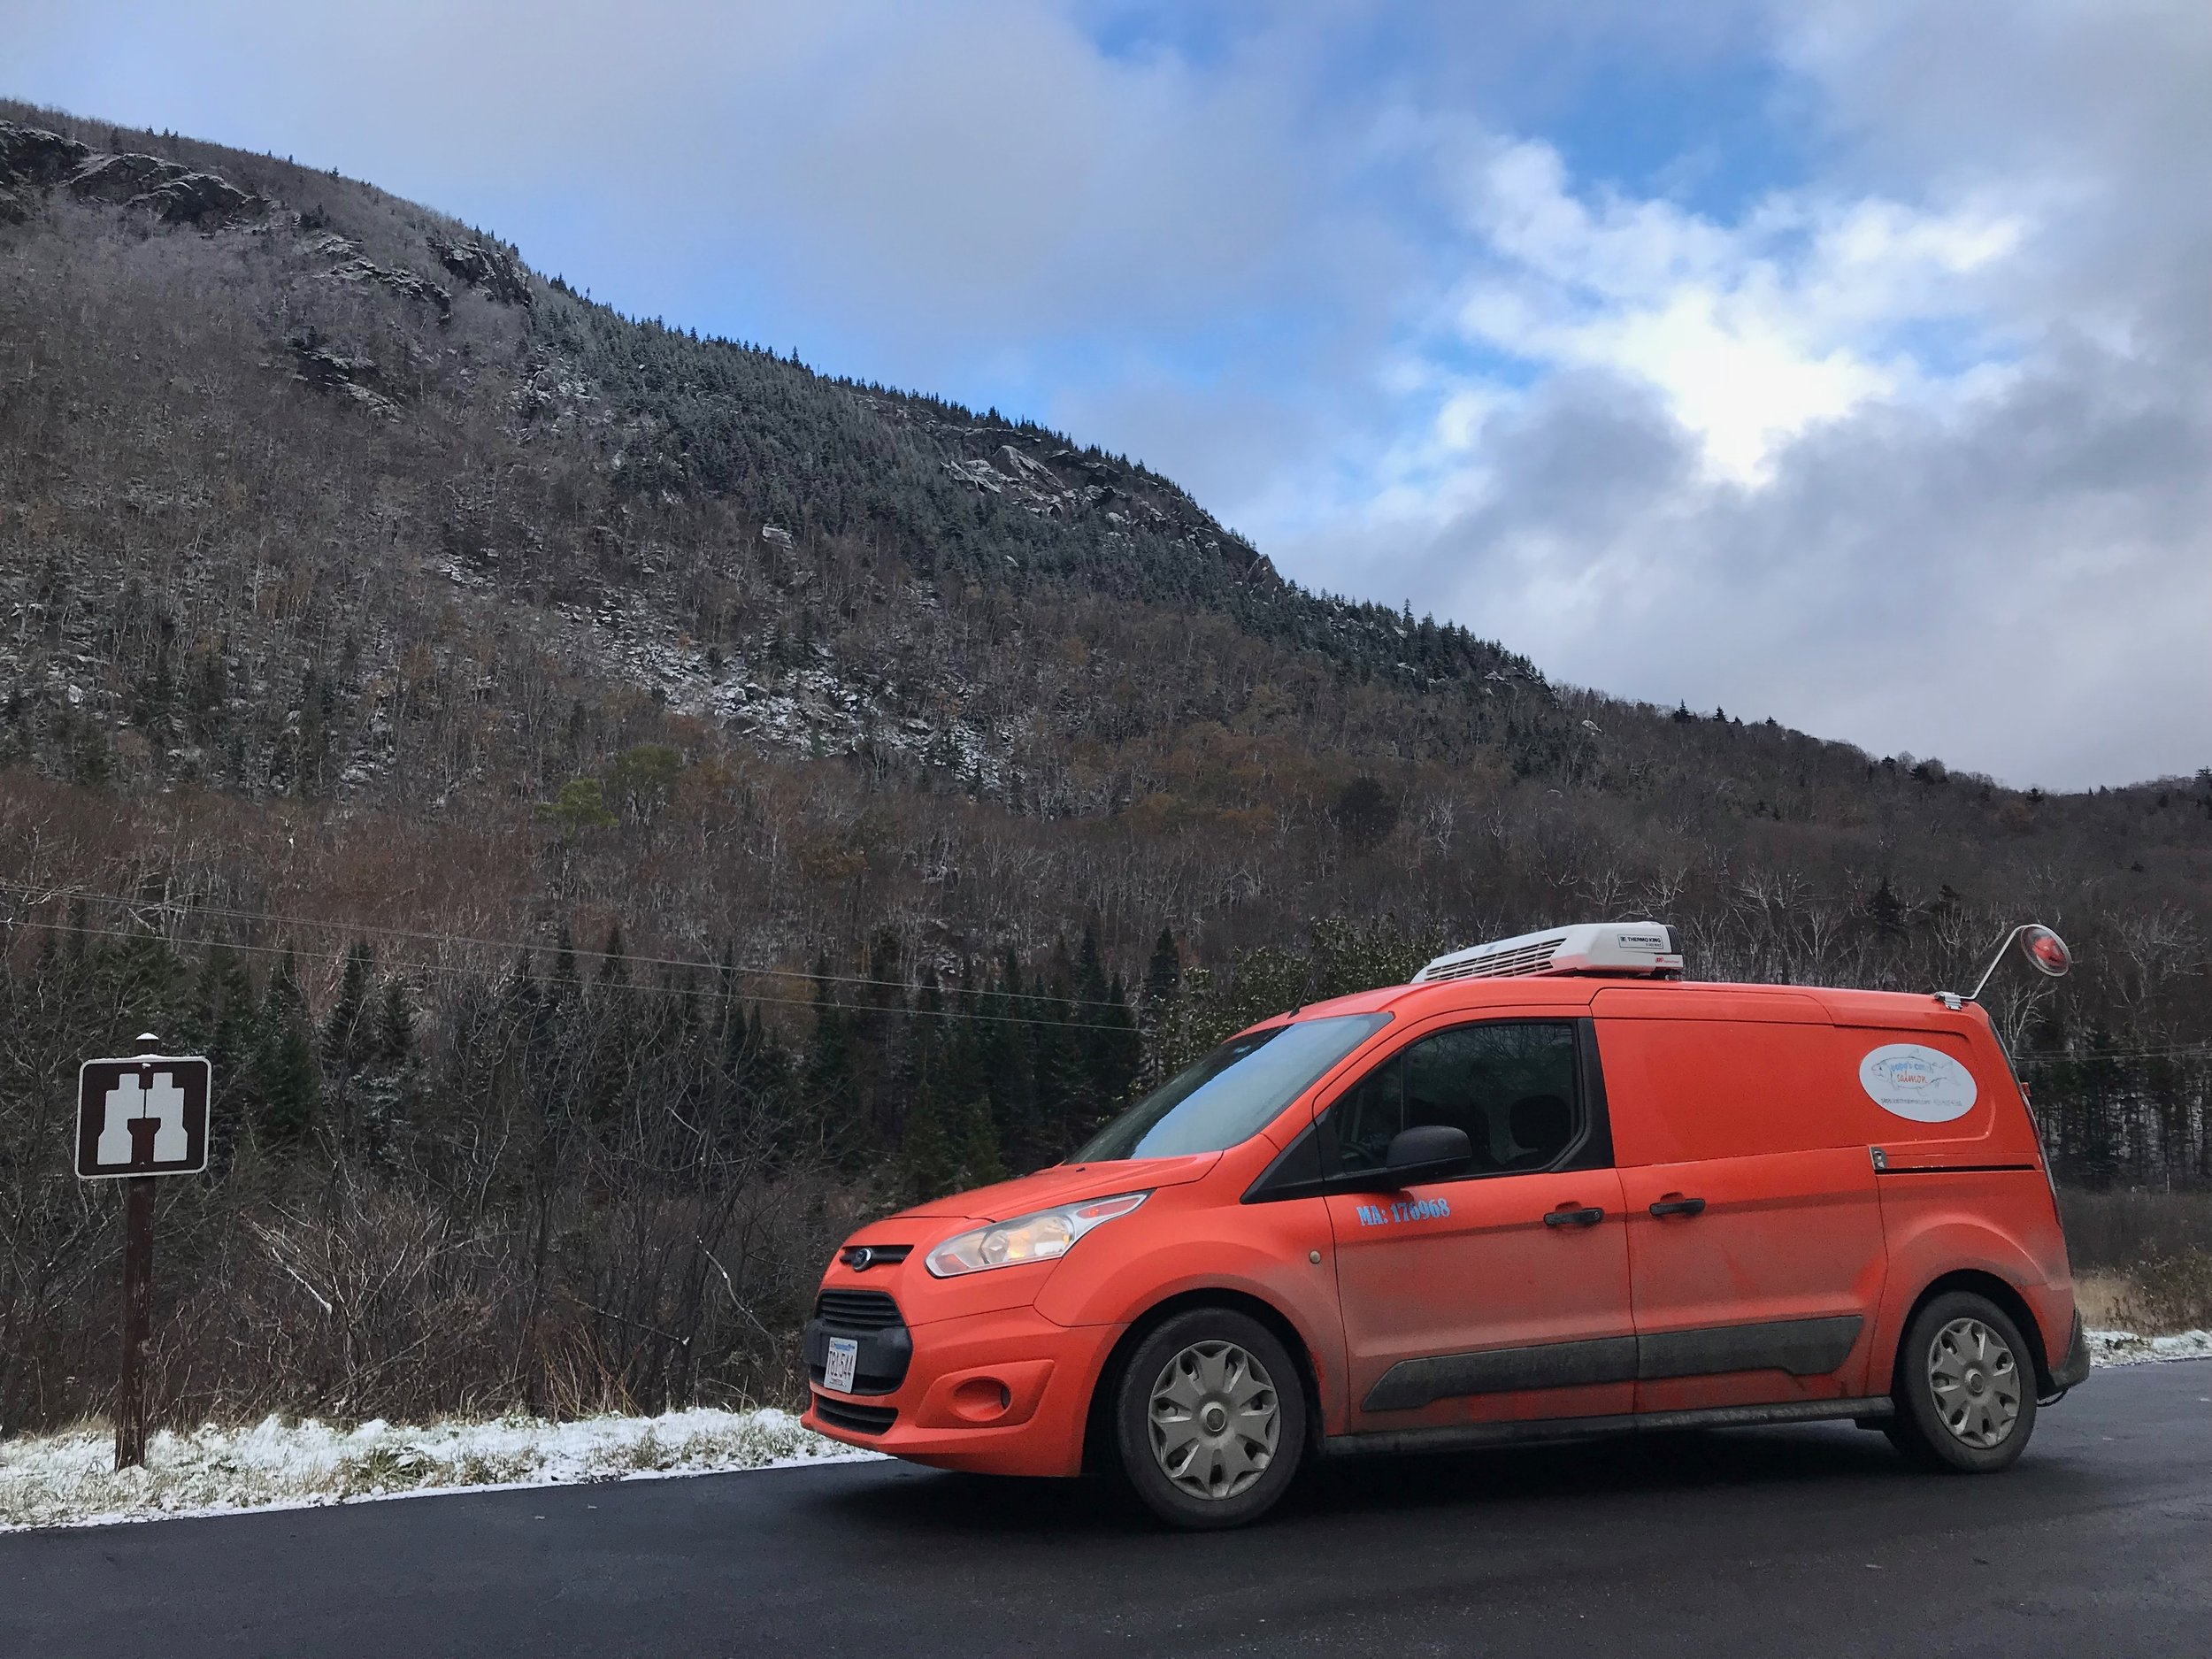 Tang  the frozen salmon van in the snowy Green Mountains of Vermont.